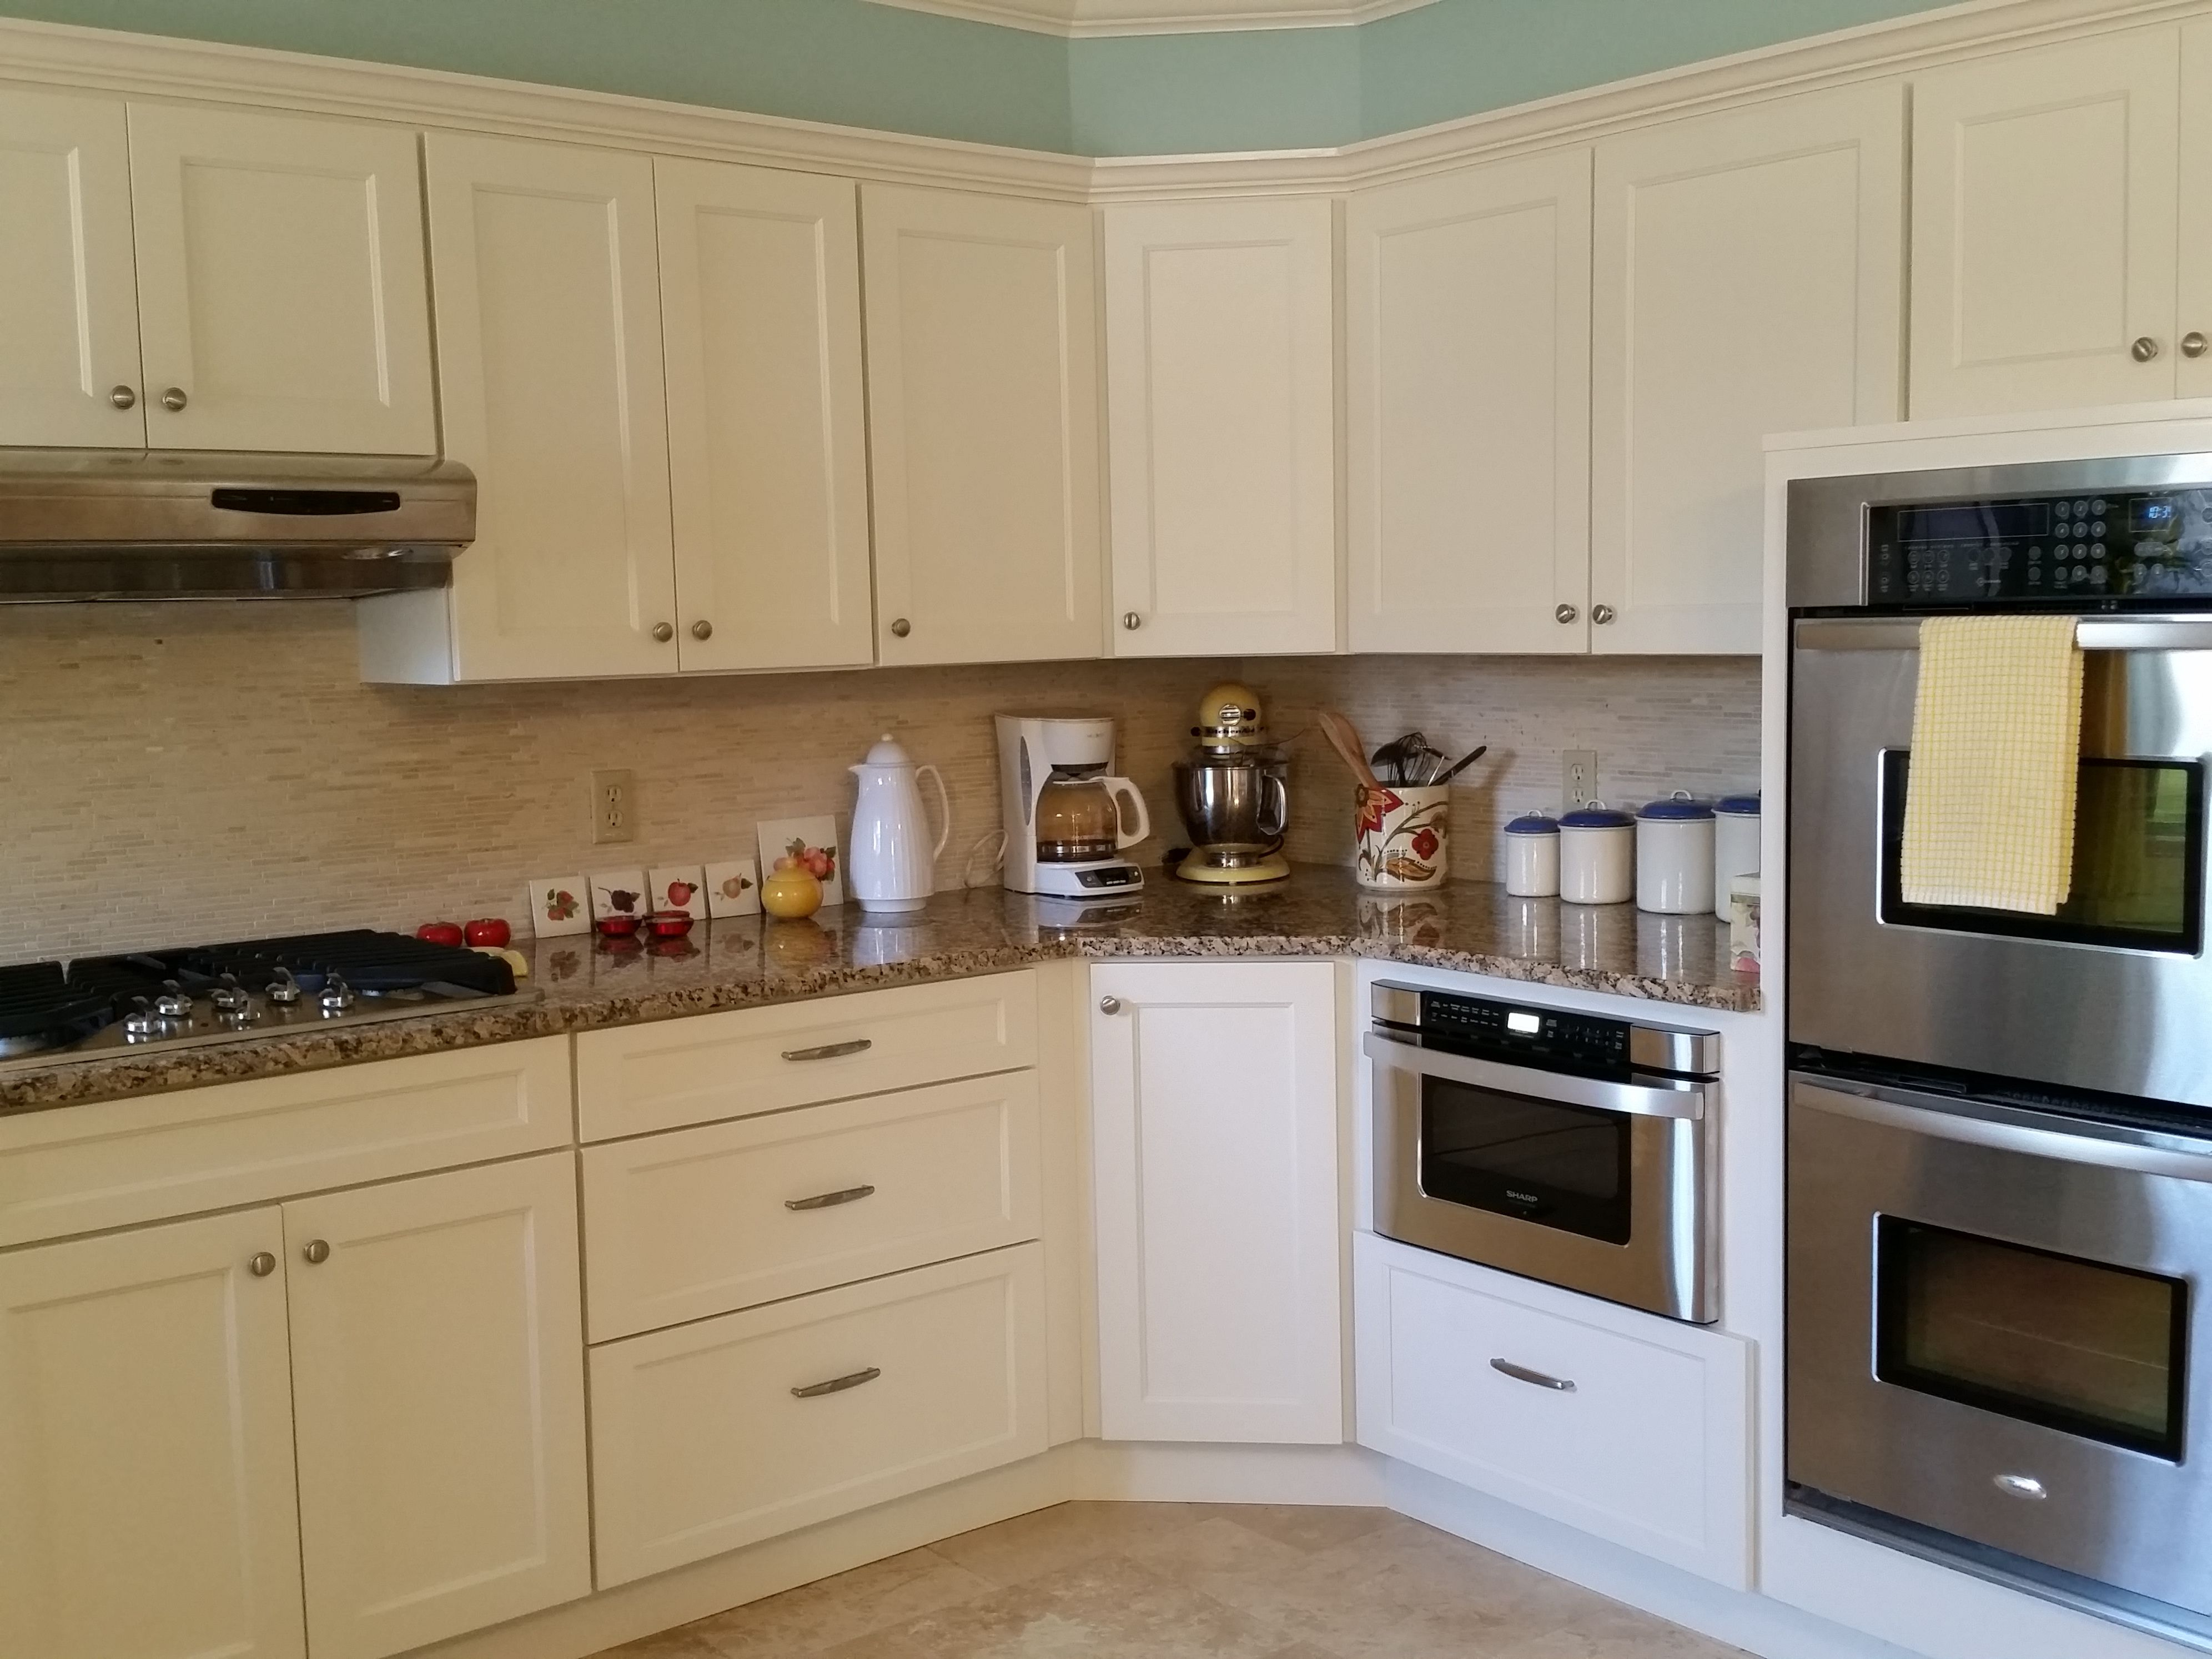 kitchen renovation by urban kitchens of oklahoma city they did a